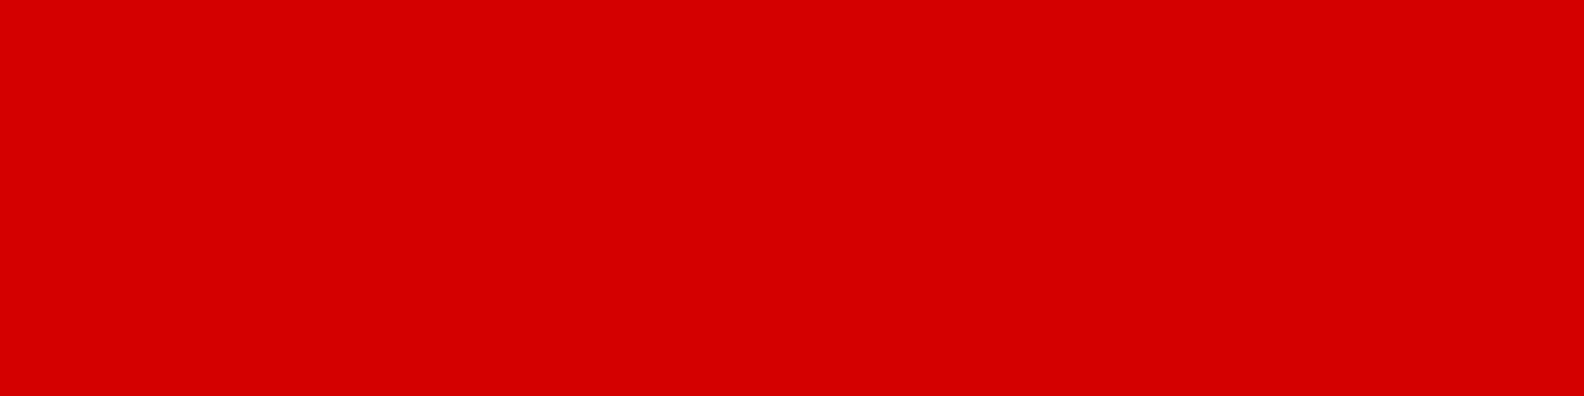 1584x396 Rosso Corsa Solid Color Background